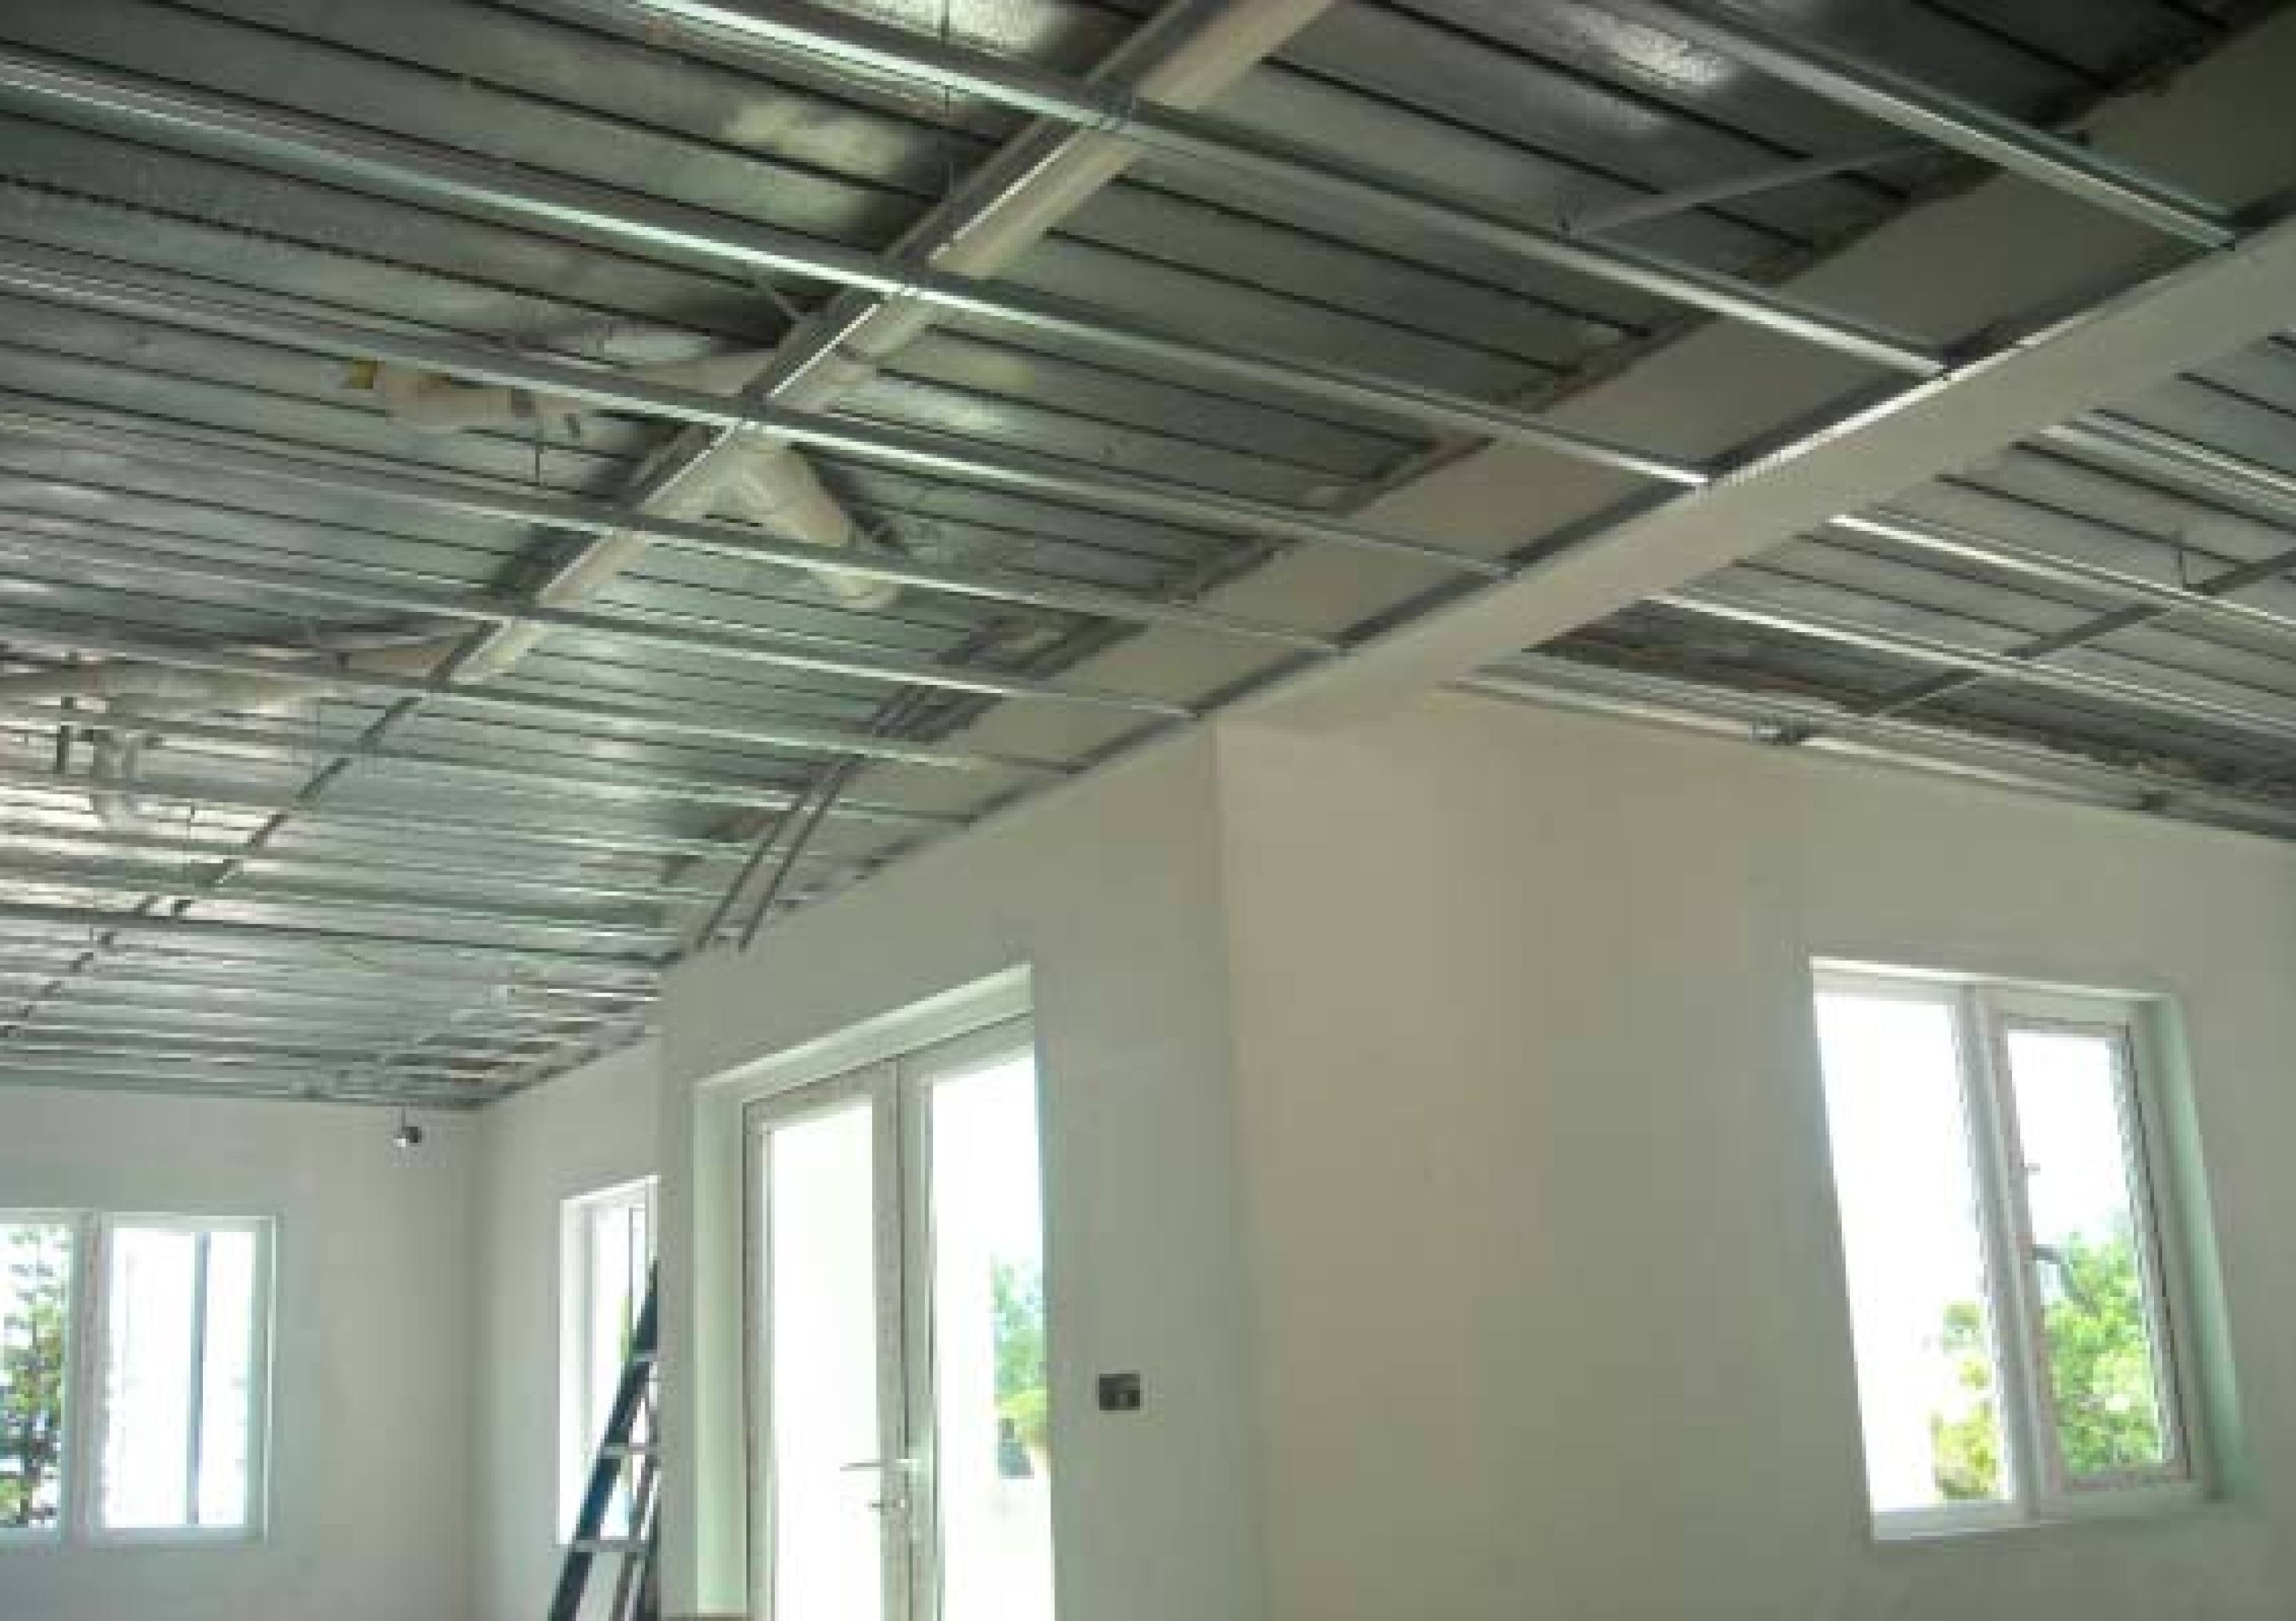 Drywall Interior Systems & Ceilings Ltd.